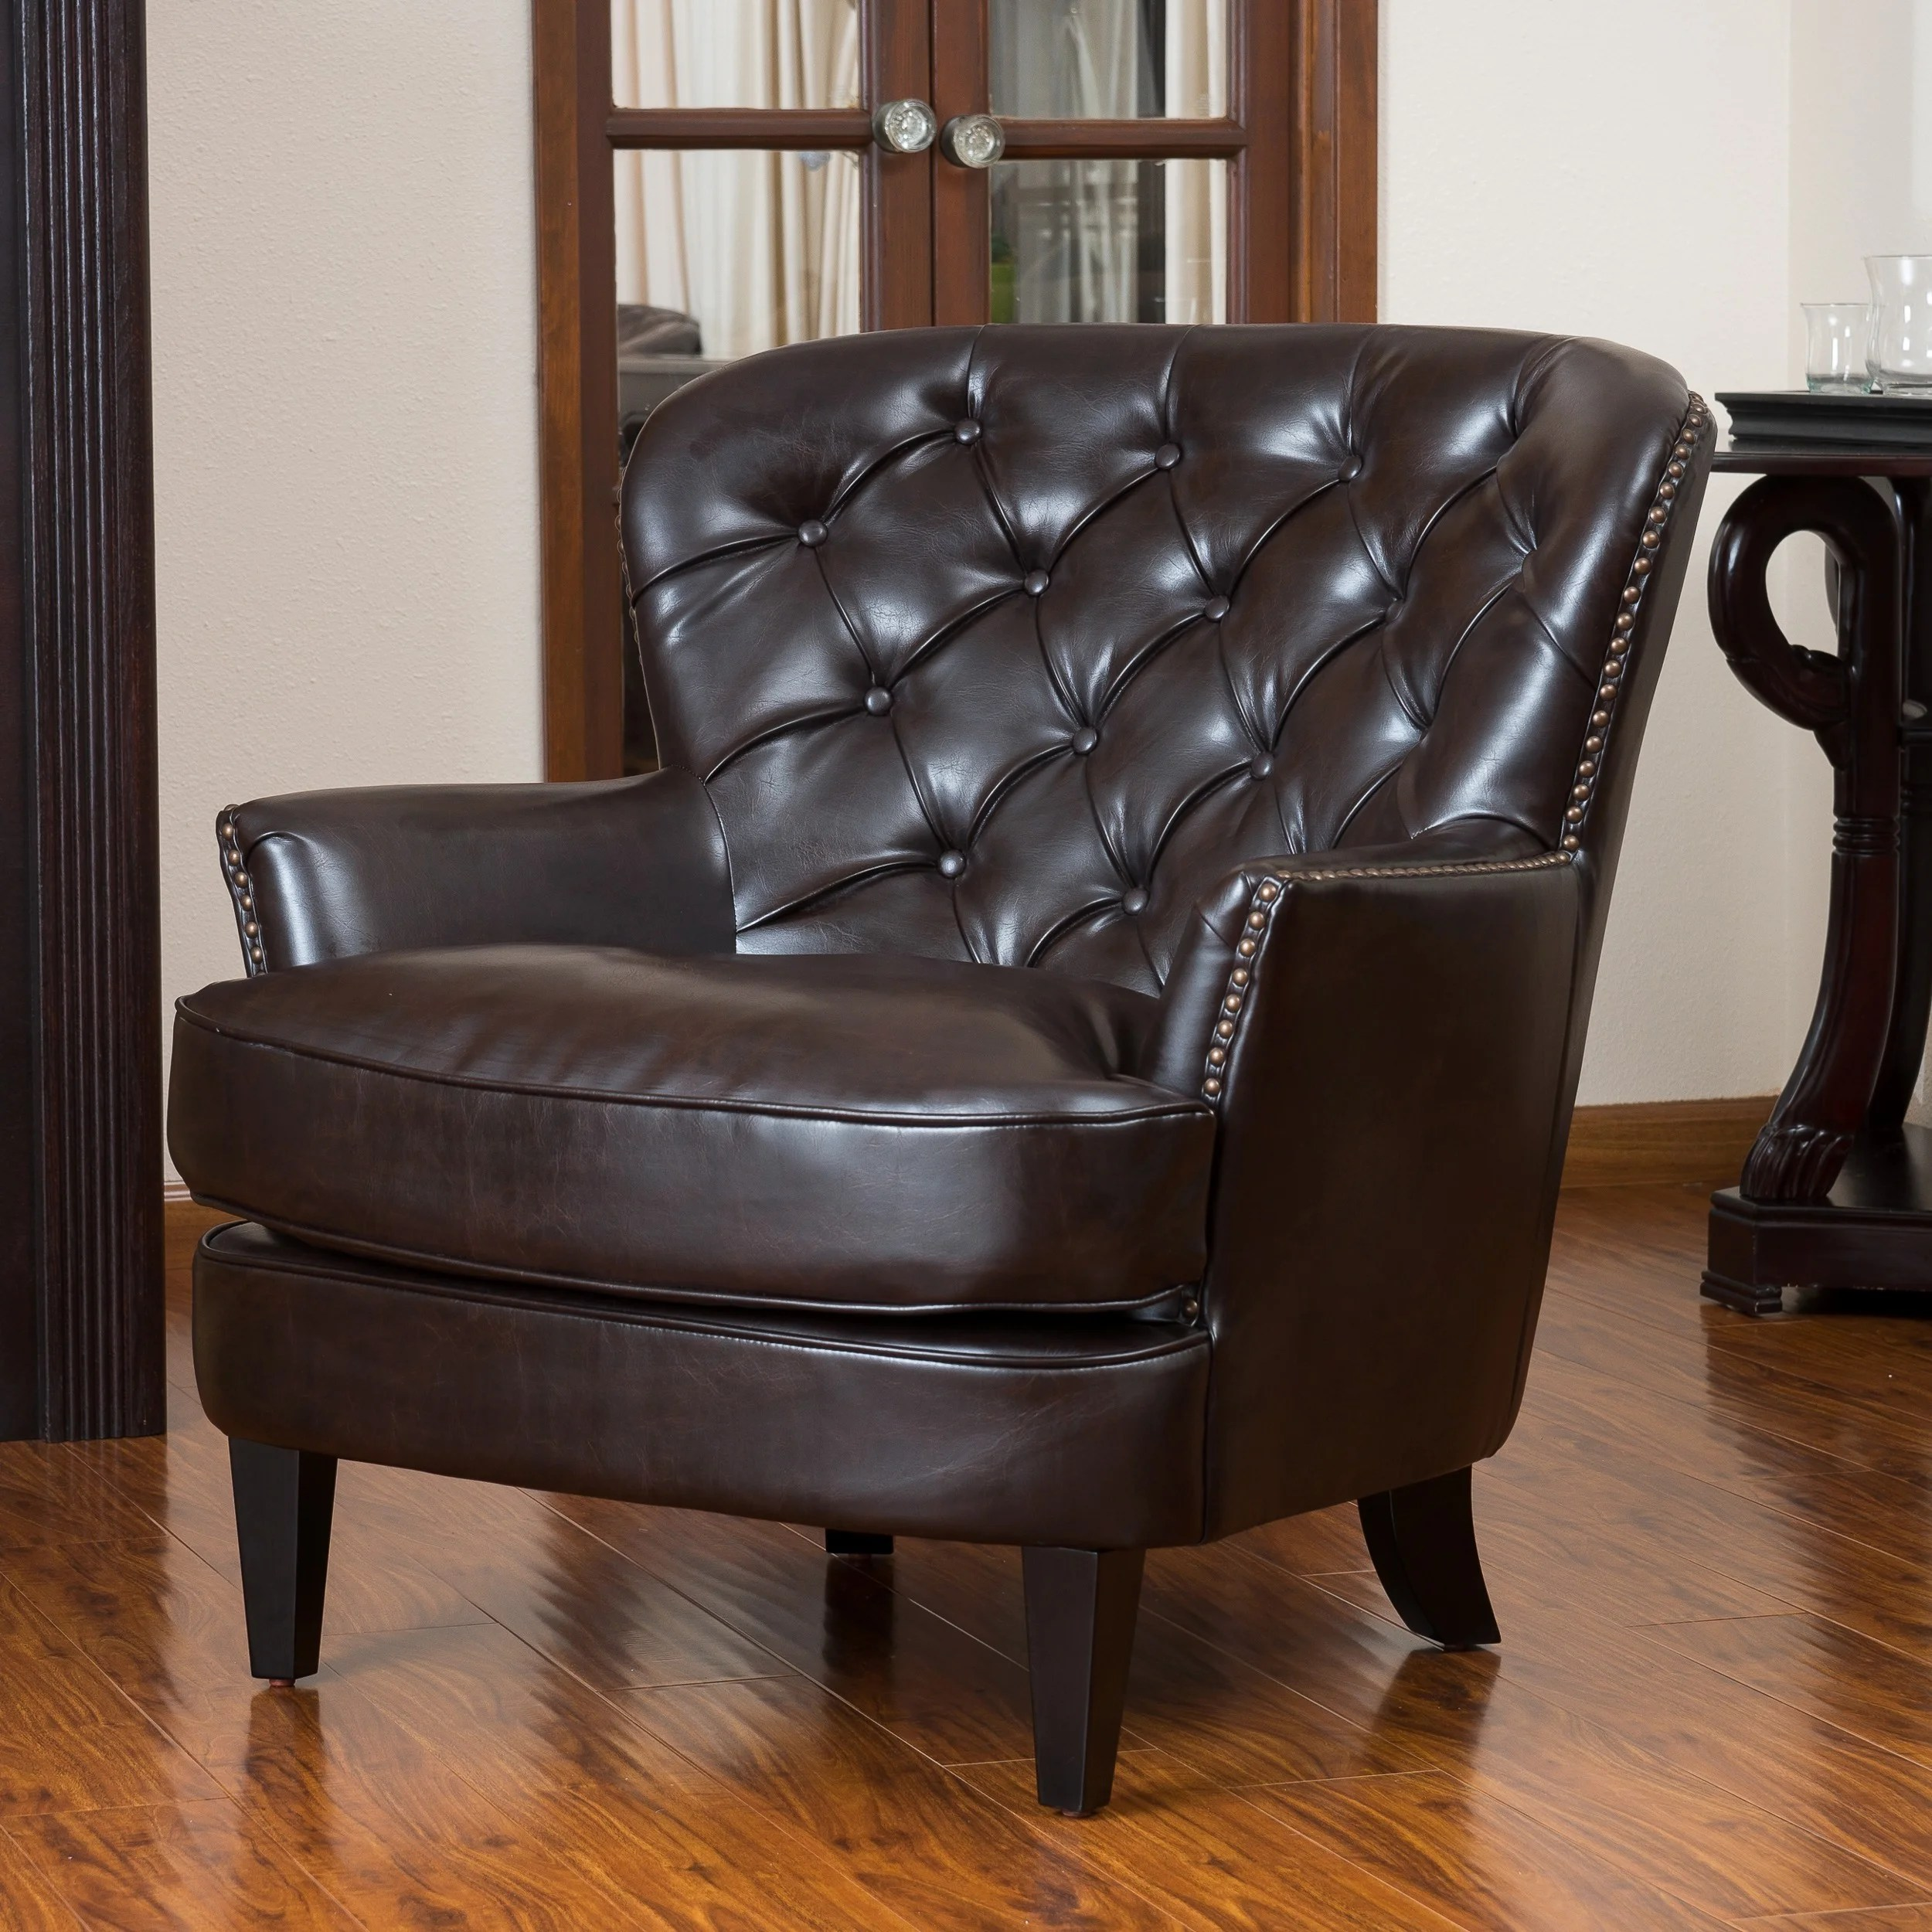 christopher knight chair cheap covers home tafton tufted brown leather club